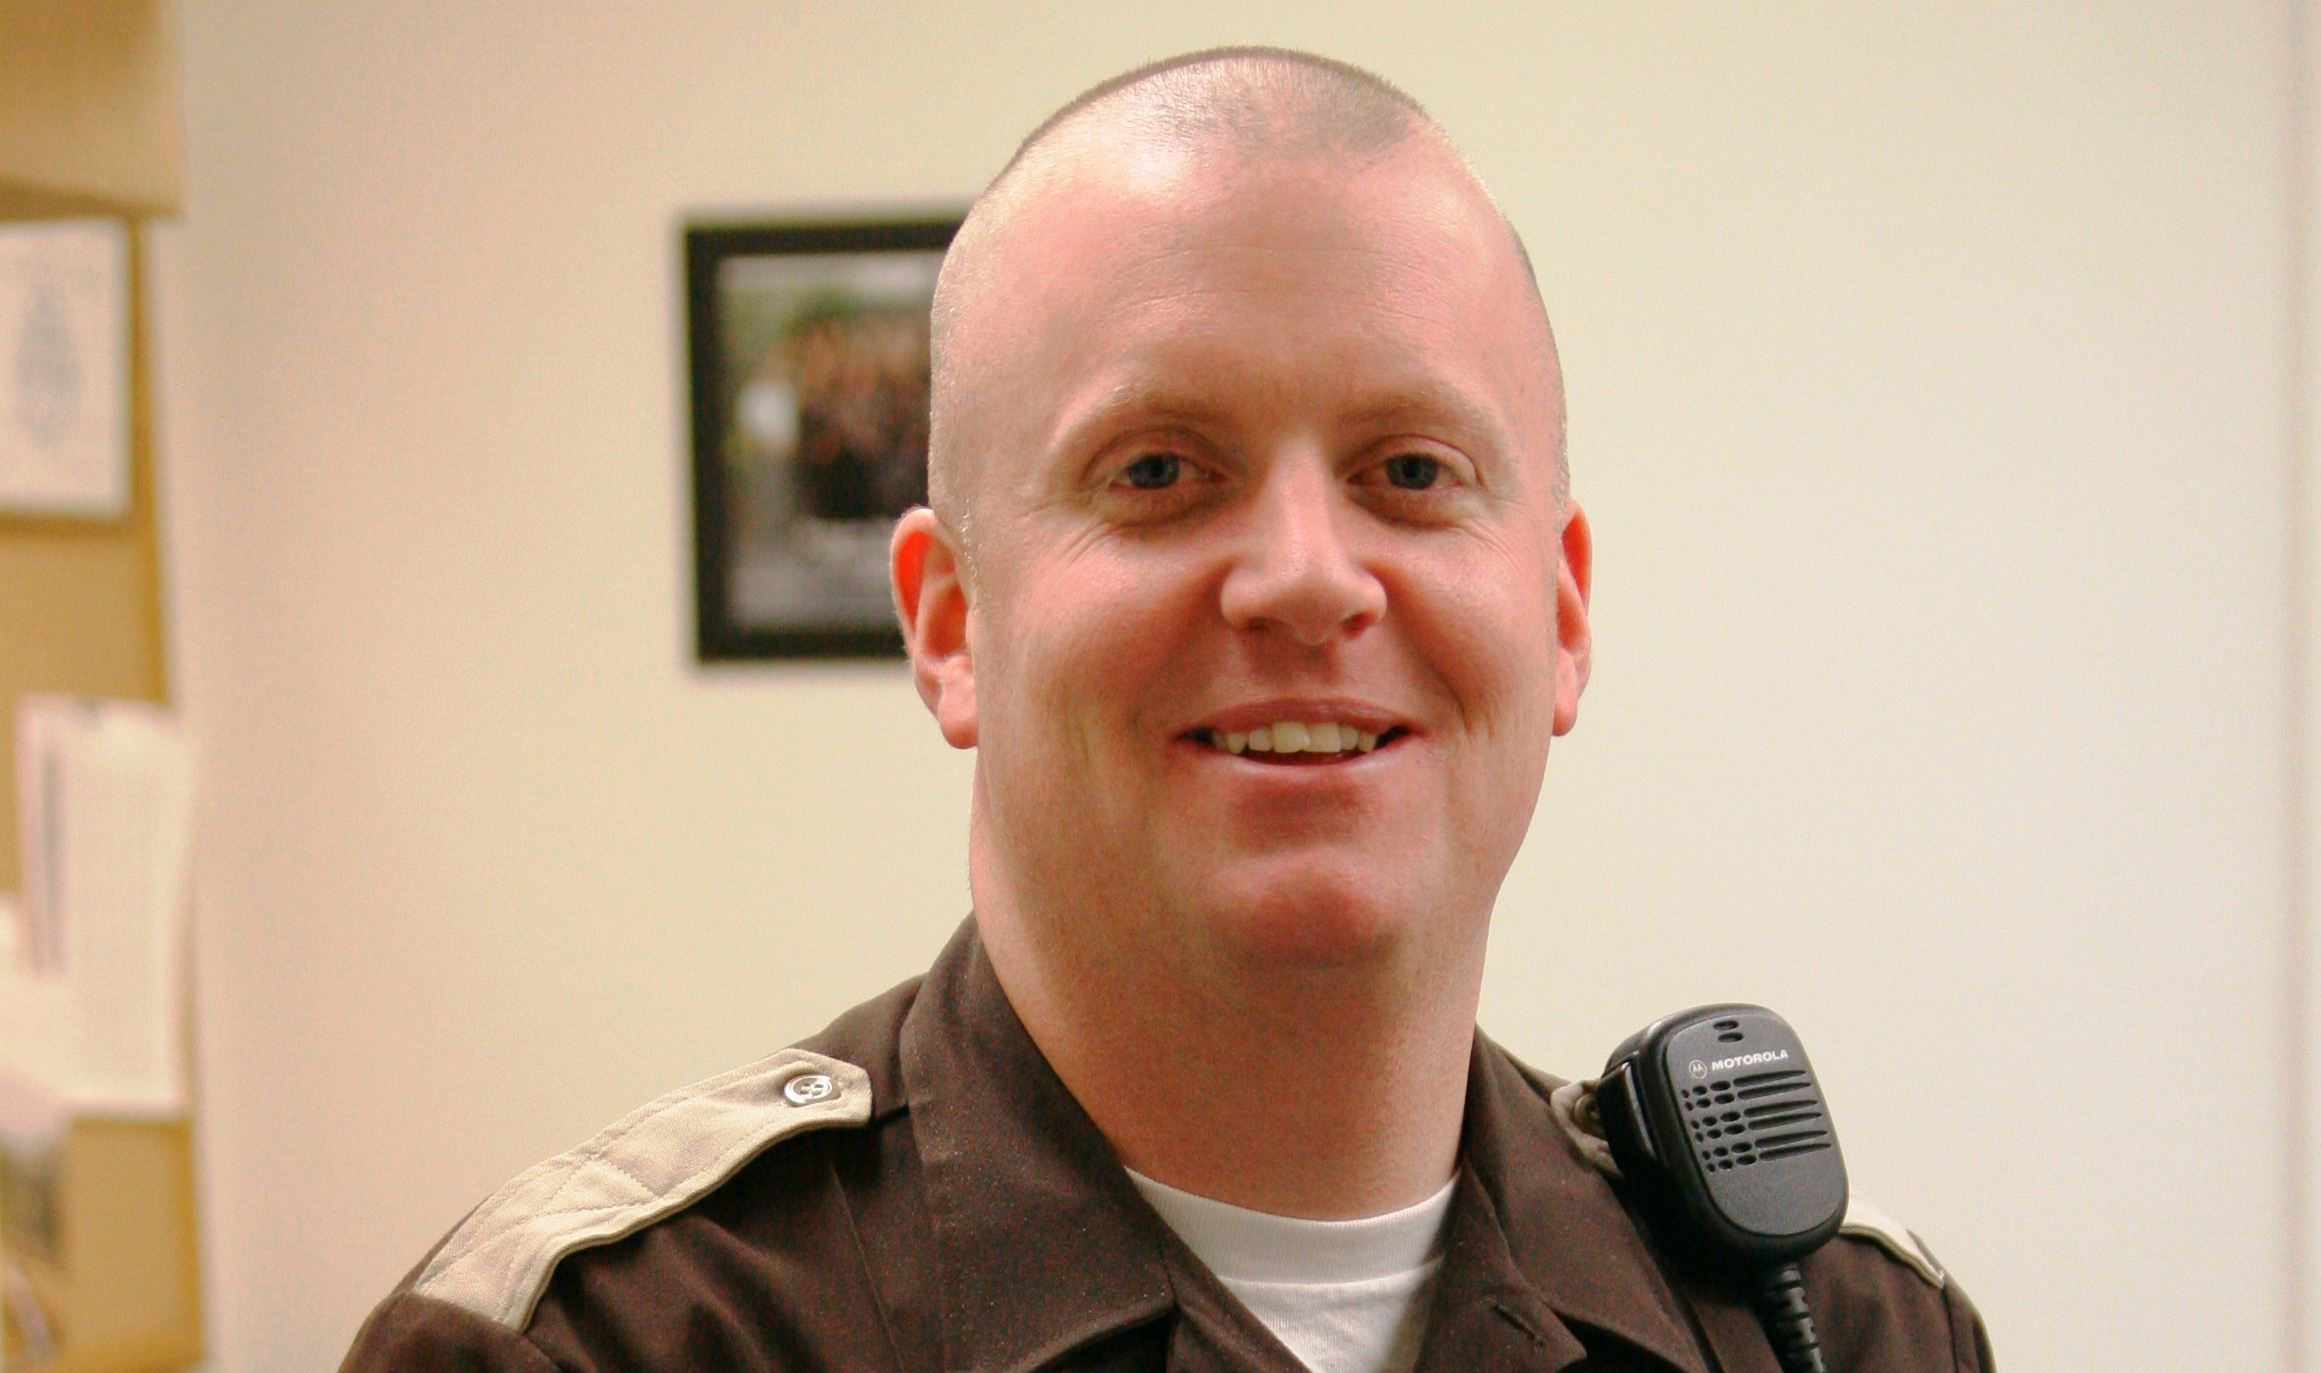 Deputy Kelly James Fredinburg | Marion County Sheriff's Office, Oregon